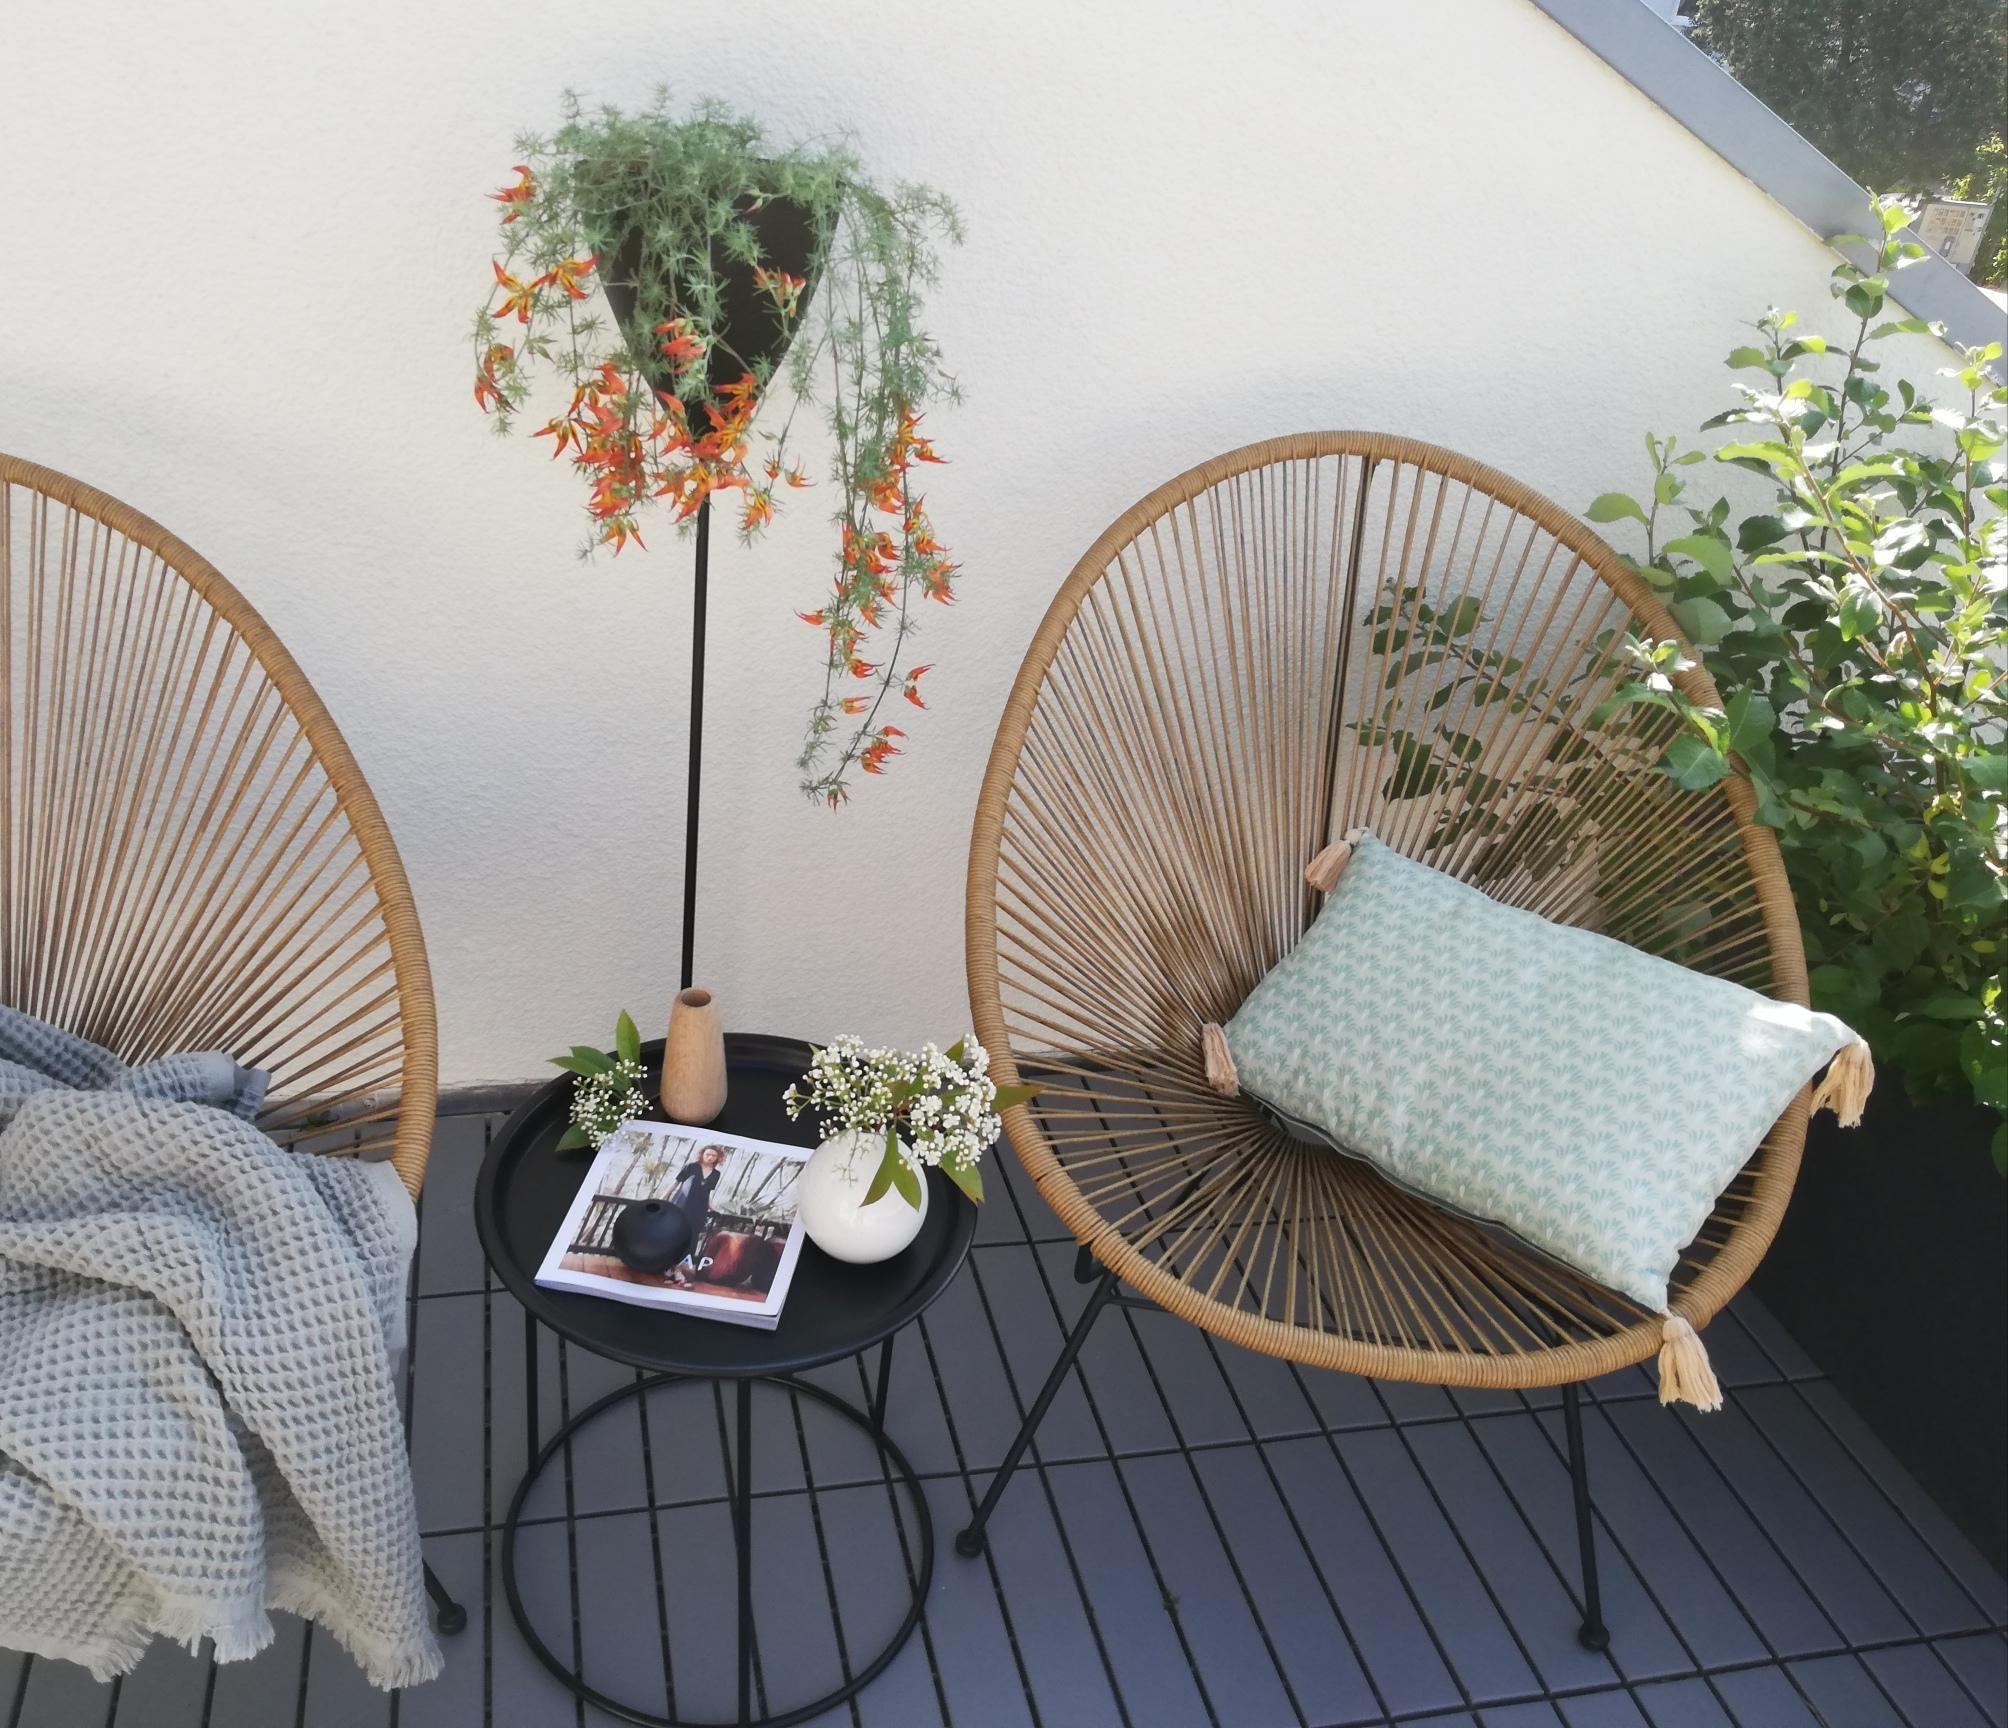 #outdoorliving#terrasse#outdoorfurniture#plants#plantlove